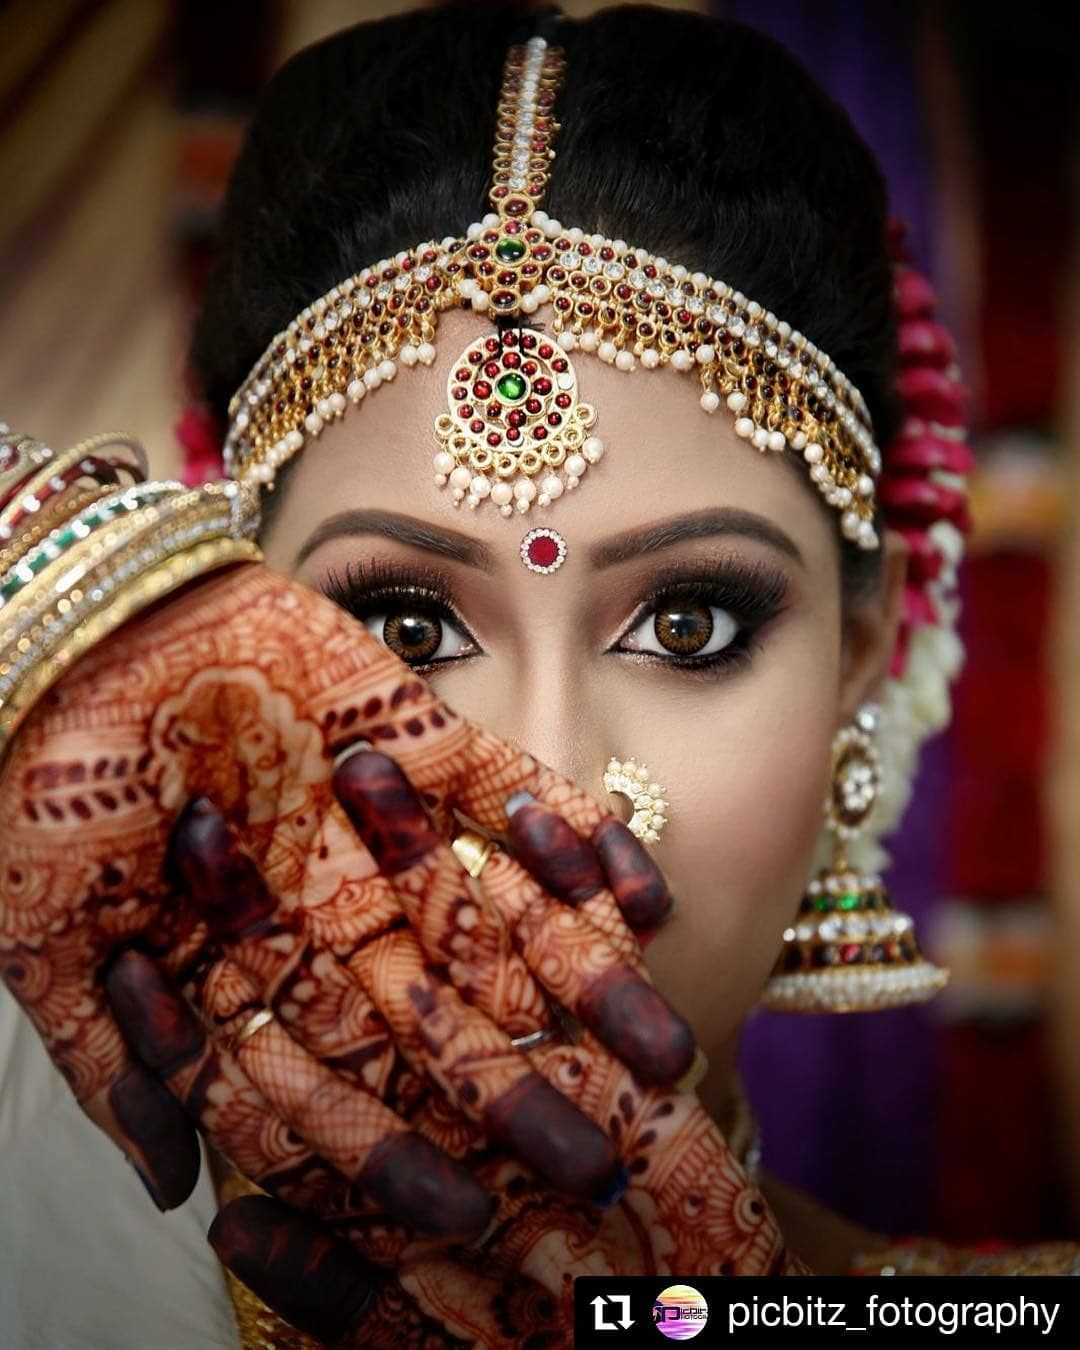 How To Advertise Your Wedding Photography Business: @picbitz_fotography Advertise Your Wedding Business Here